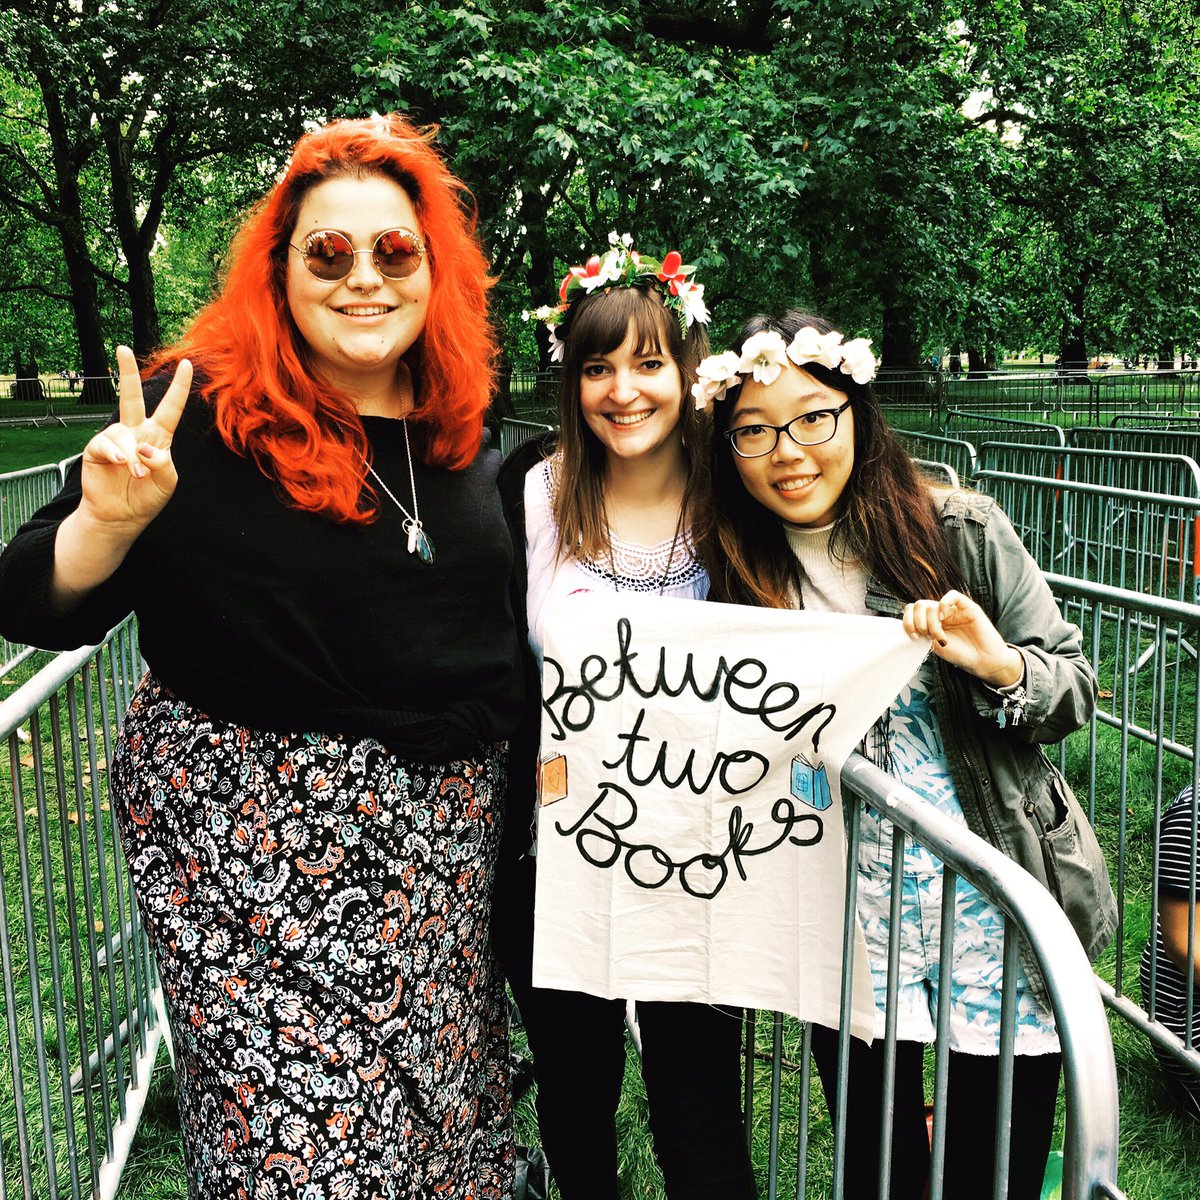 Reppin @BetweenTwoBooks in the priority queue for @flo_tweet at BST!! https://t.co/Wdlys5Abft